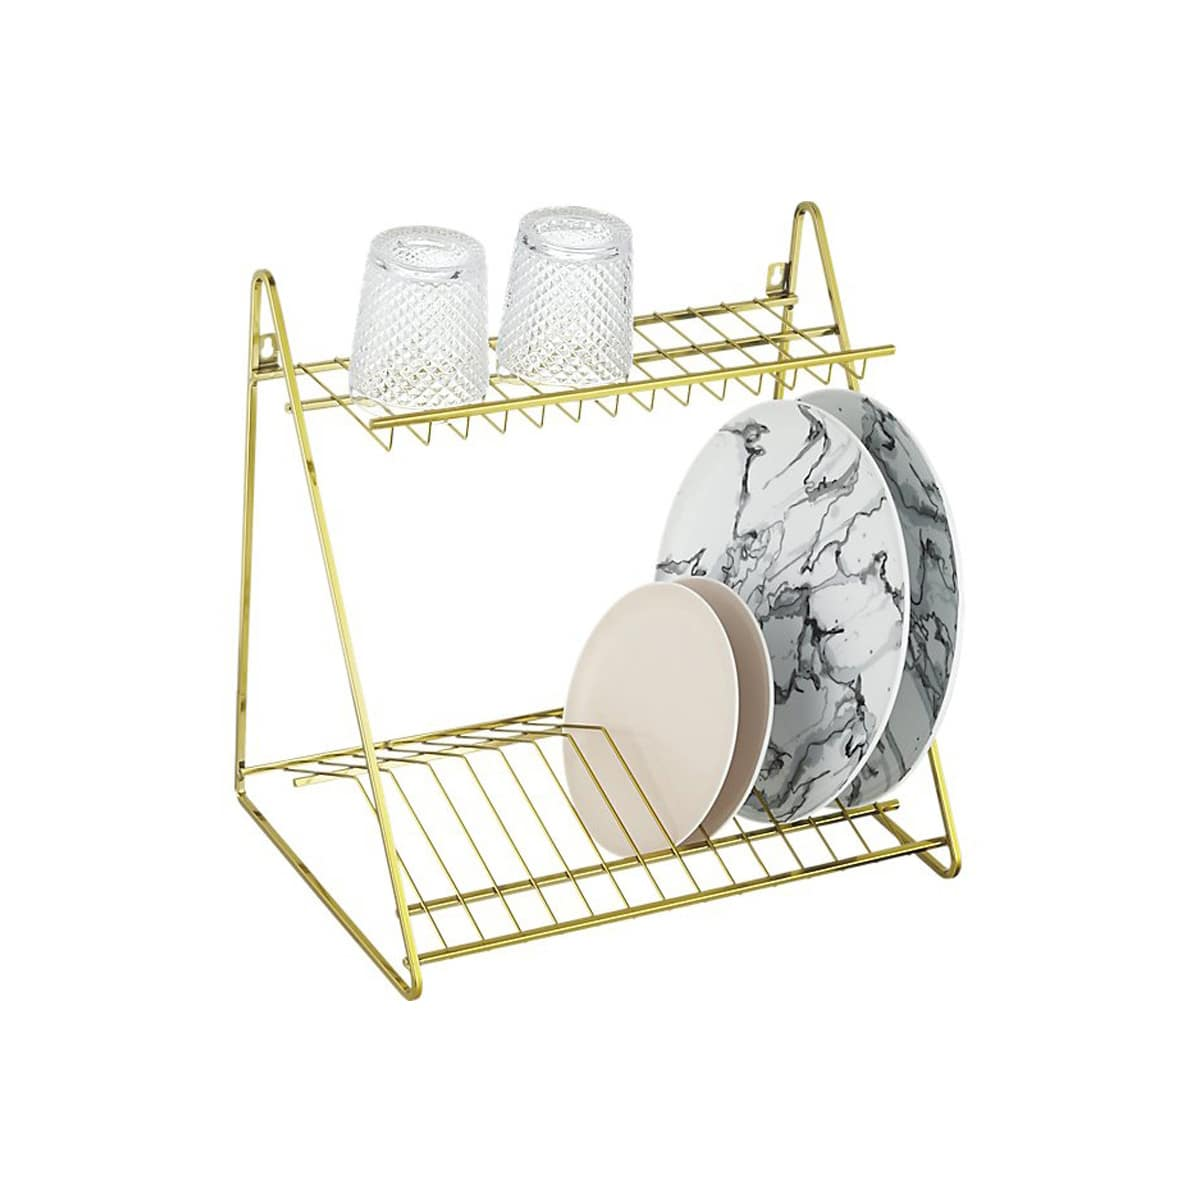 10 Dish Drying Racks That Are Better than a Tea Towel: gallery image 3